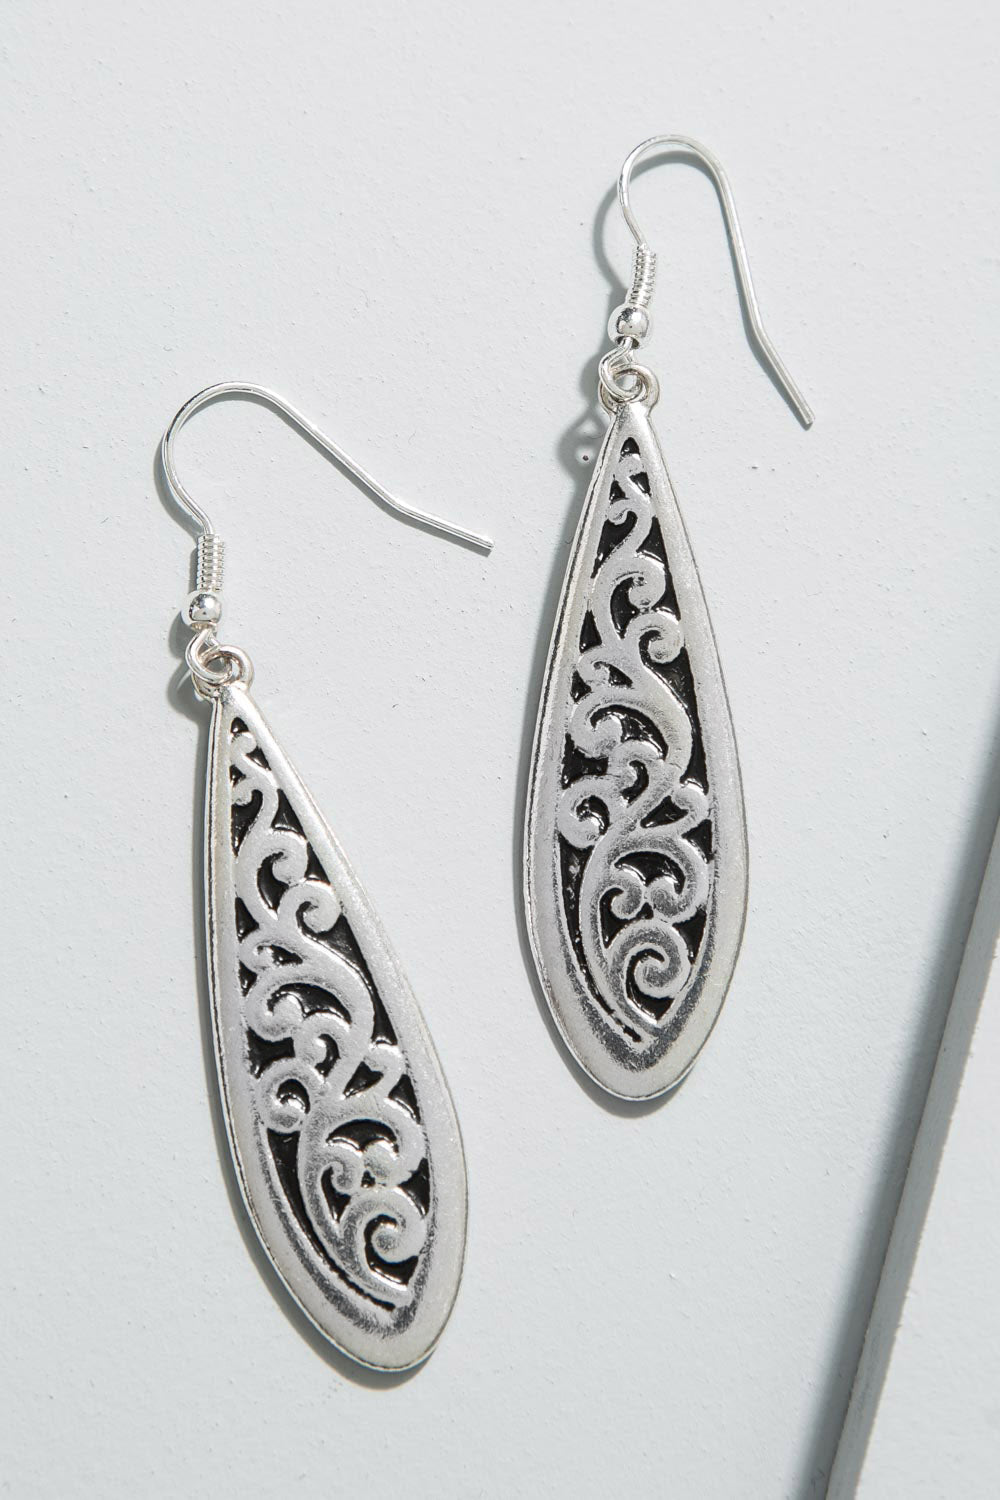 Type 2 Real Beauty Earrings